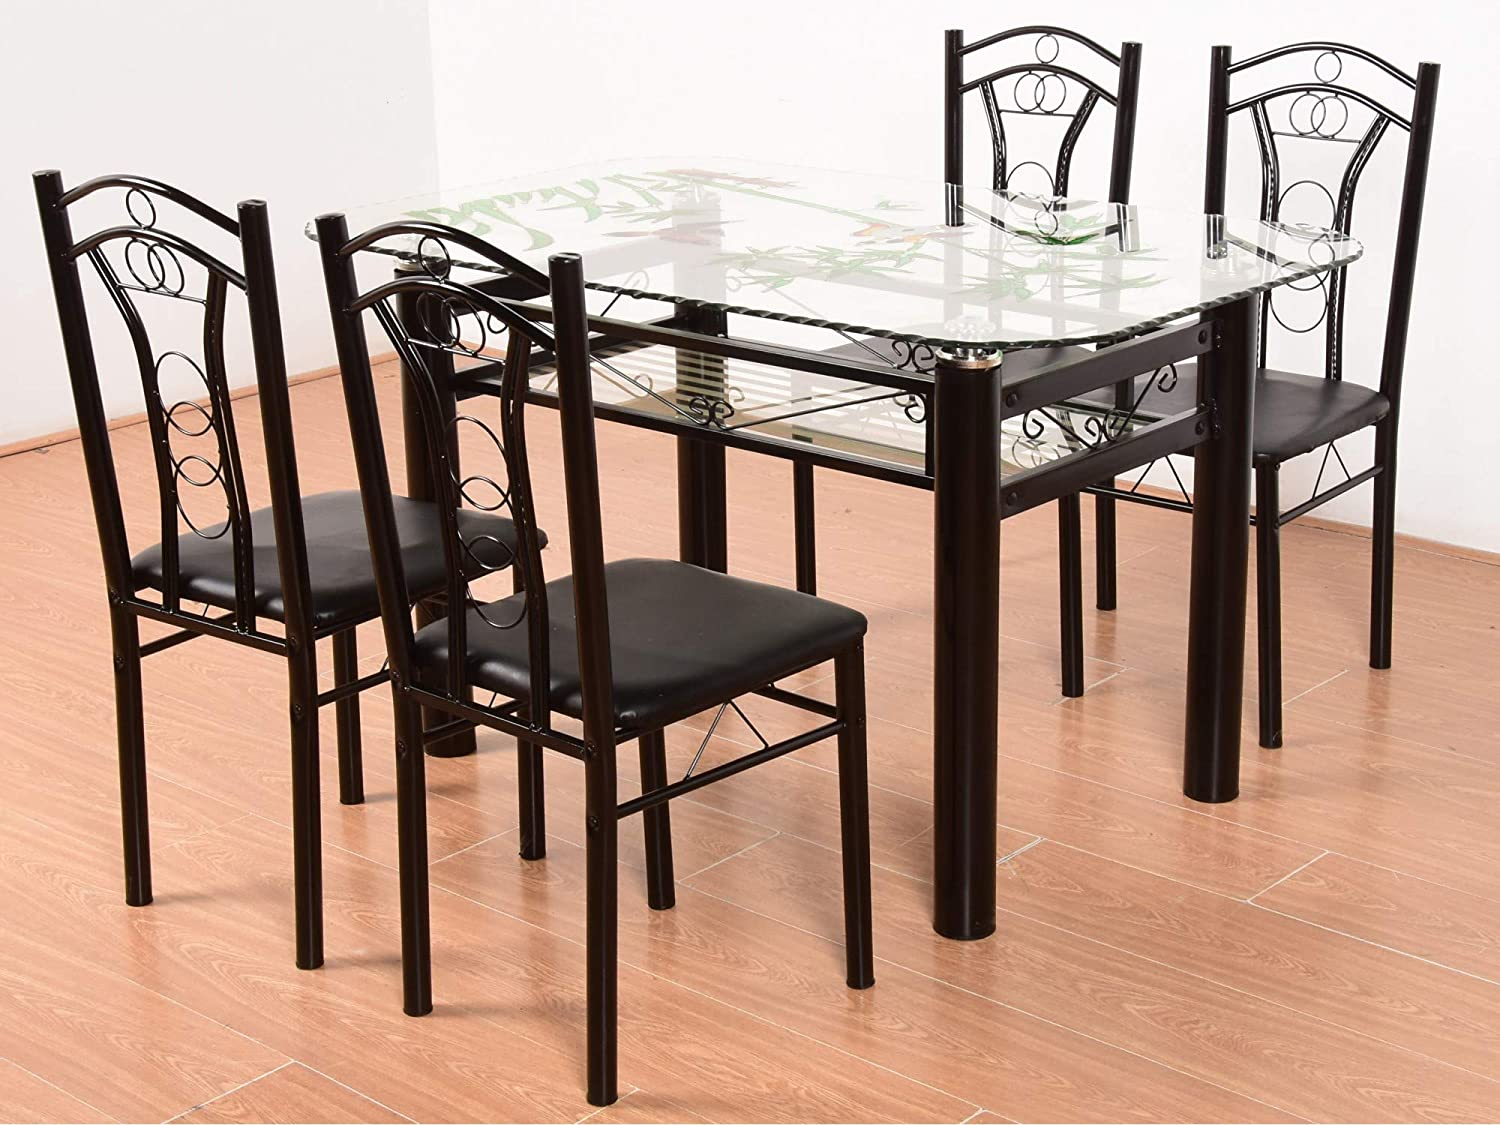 T2a furniture neoplex glass top metal base 4 seater dining table black amazon in home kitchen